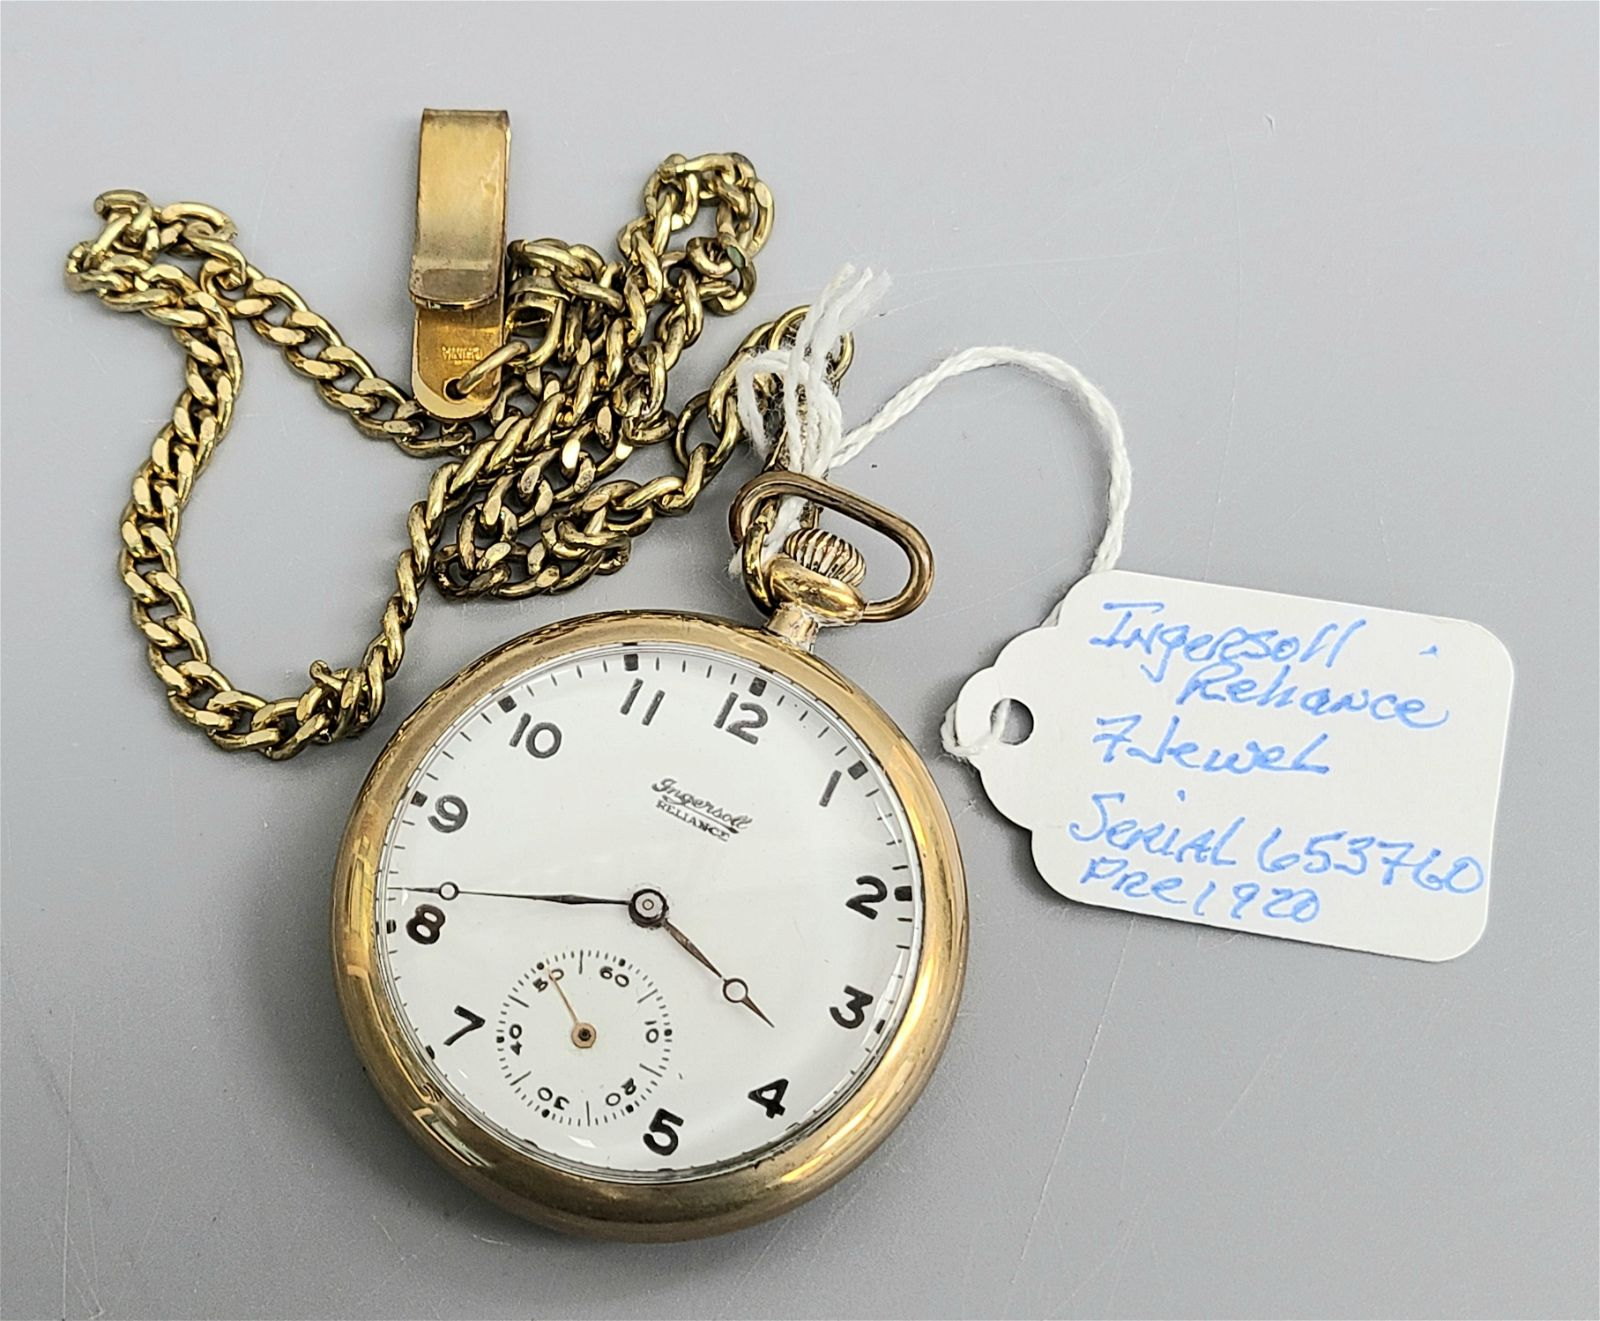 INGERSOLL RELIANCE 7 JEWELS GOLD PLATED POCKET WATCH